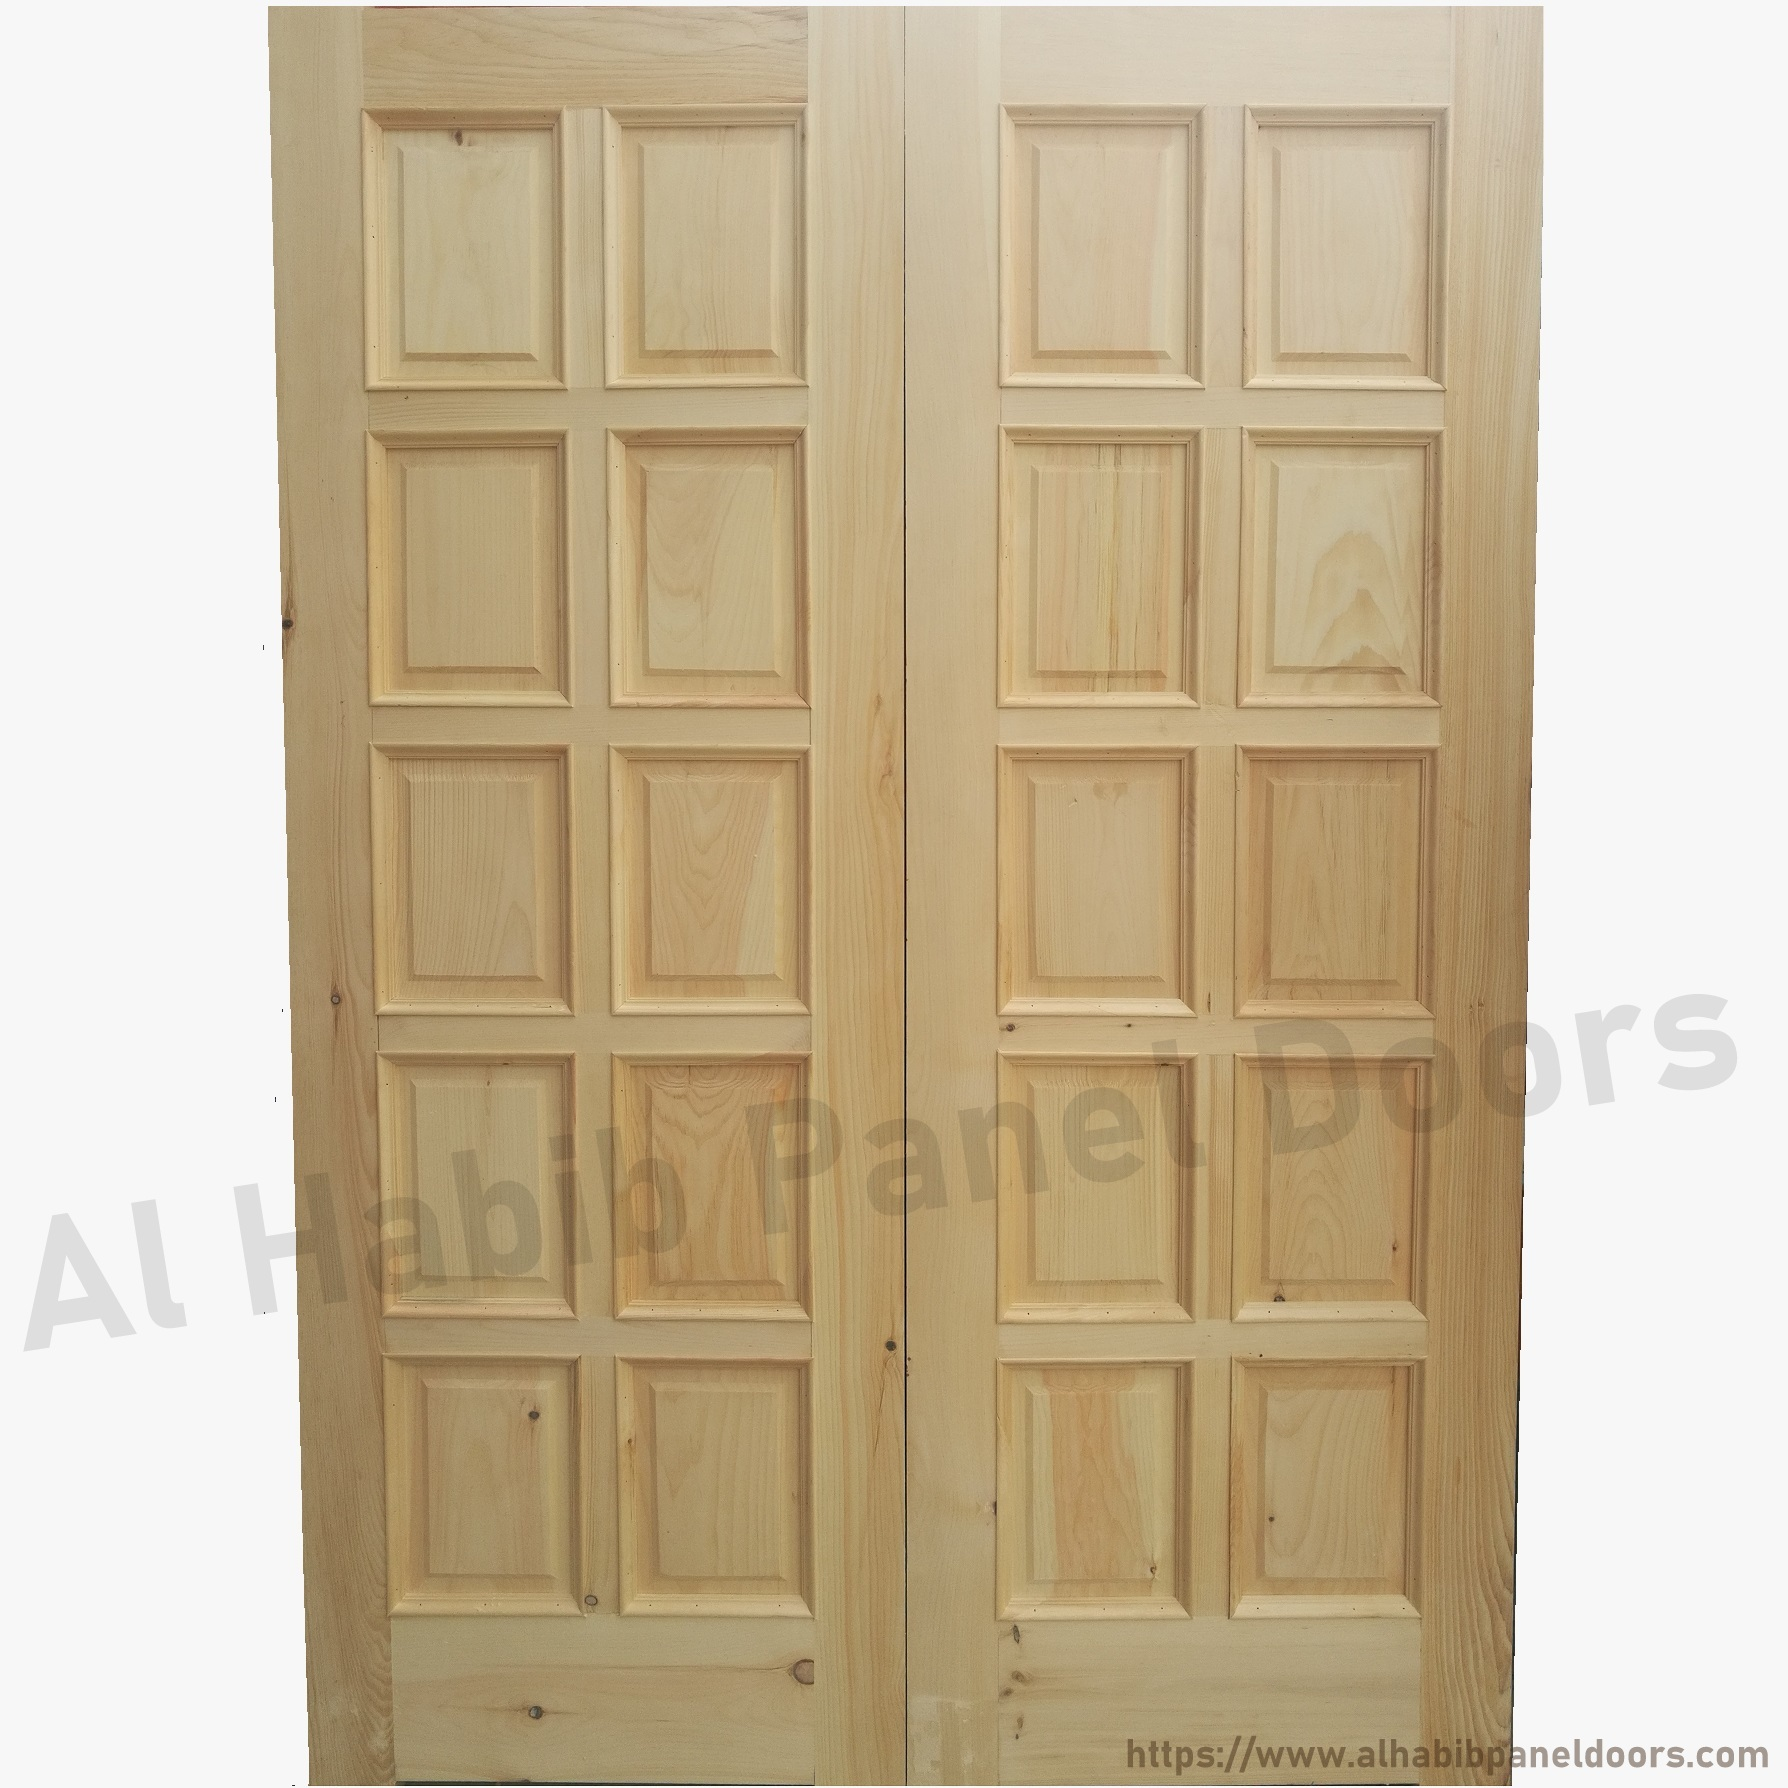 Latest wooden main double door designs native home Main door wooden design